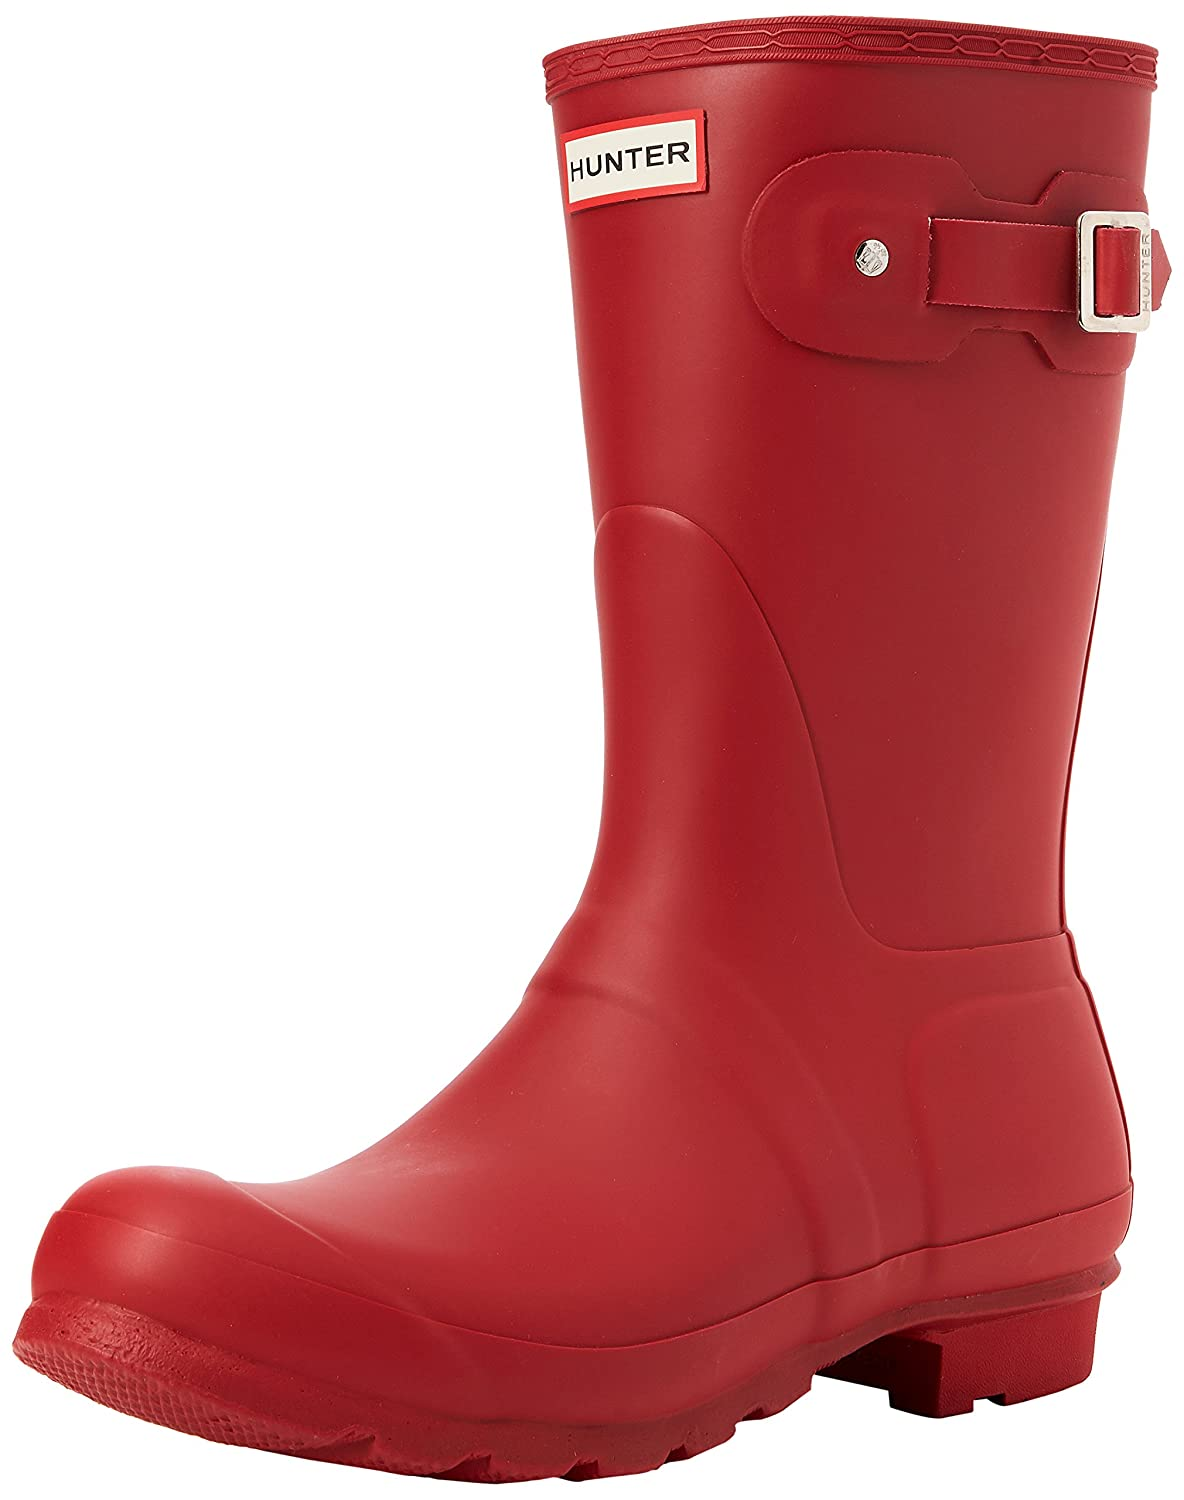 Hunter Women's Original Short Rain Boot B00K1WBAME 5 B(M) US|Military Red